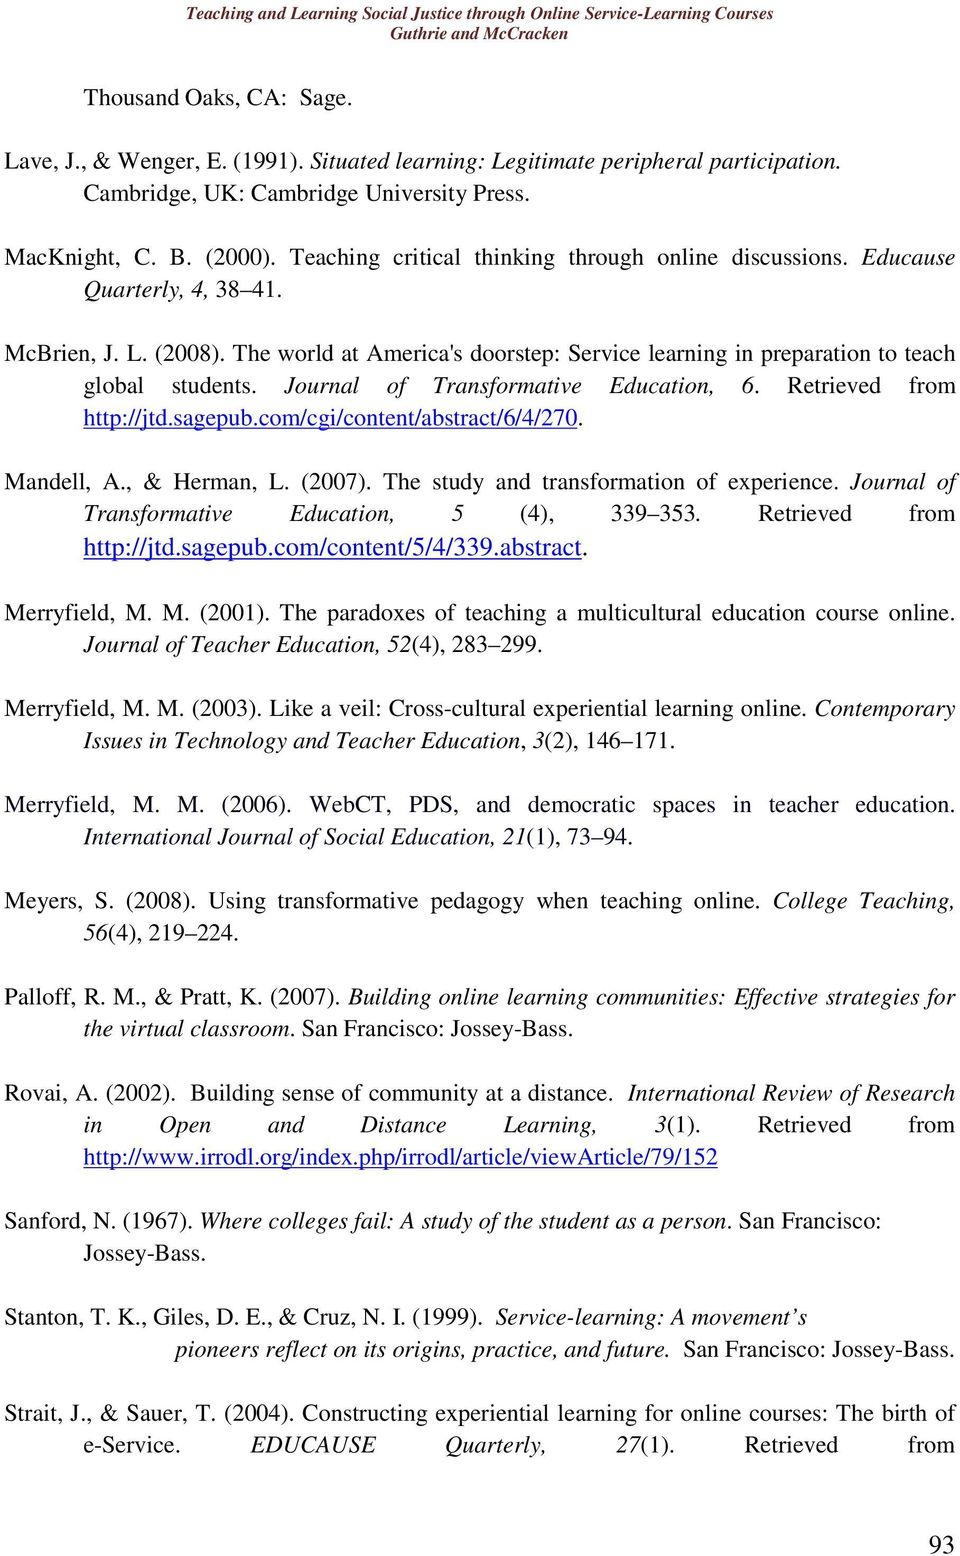 Journal of Transformative Education, 6. Retrieved from http://jtd.sagepub.com/cgi/content/abstract/6/4/270. Mandell, A., & Herman, L. (2007). The study and transformation of experience.